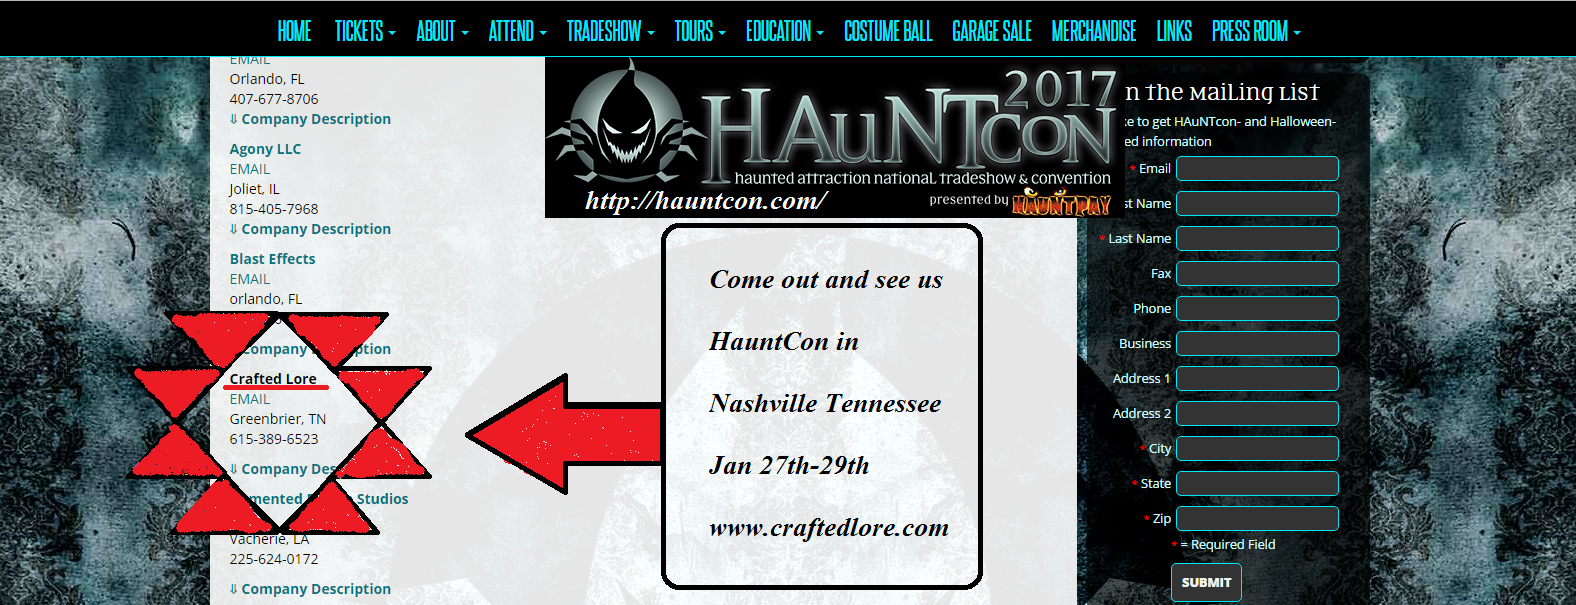 Crafted Lore will be attending the Nashville Tennessee HauntCon (http://hauntcon.com/) Jan 27th-29th.......Come out and see us! www.craftedlore.com